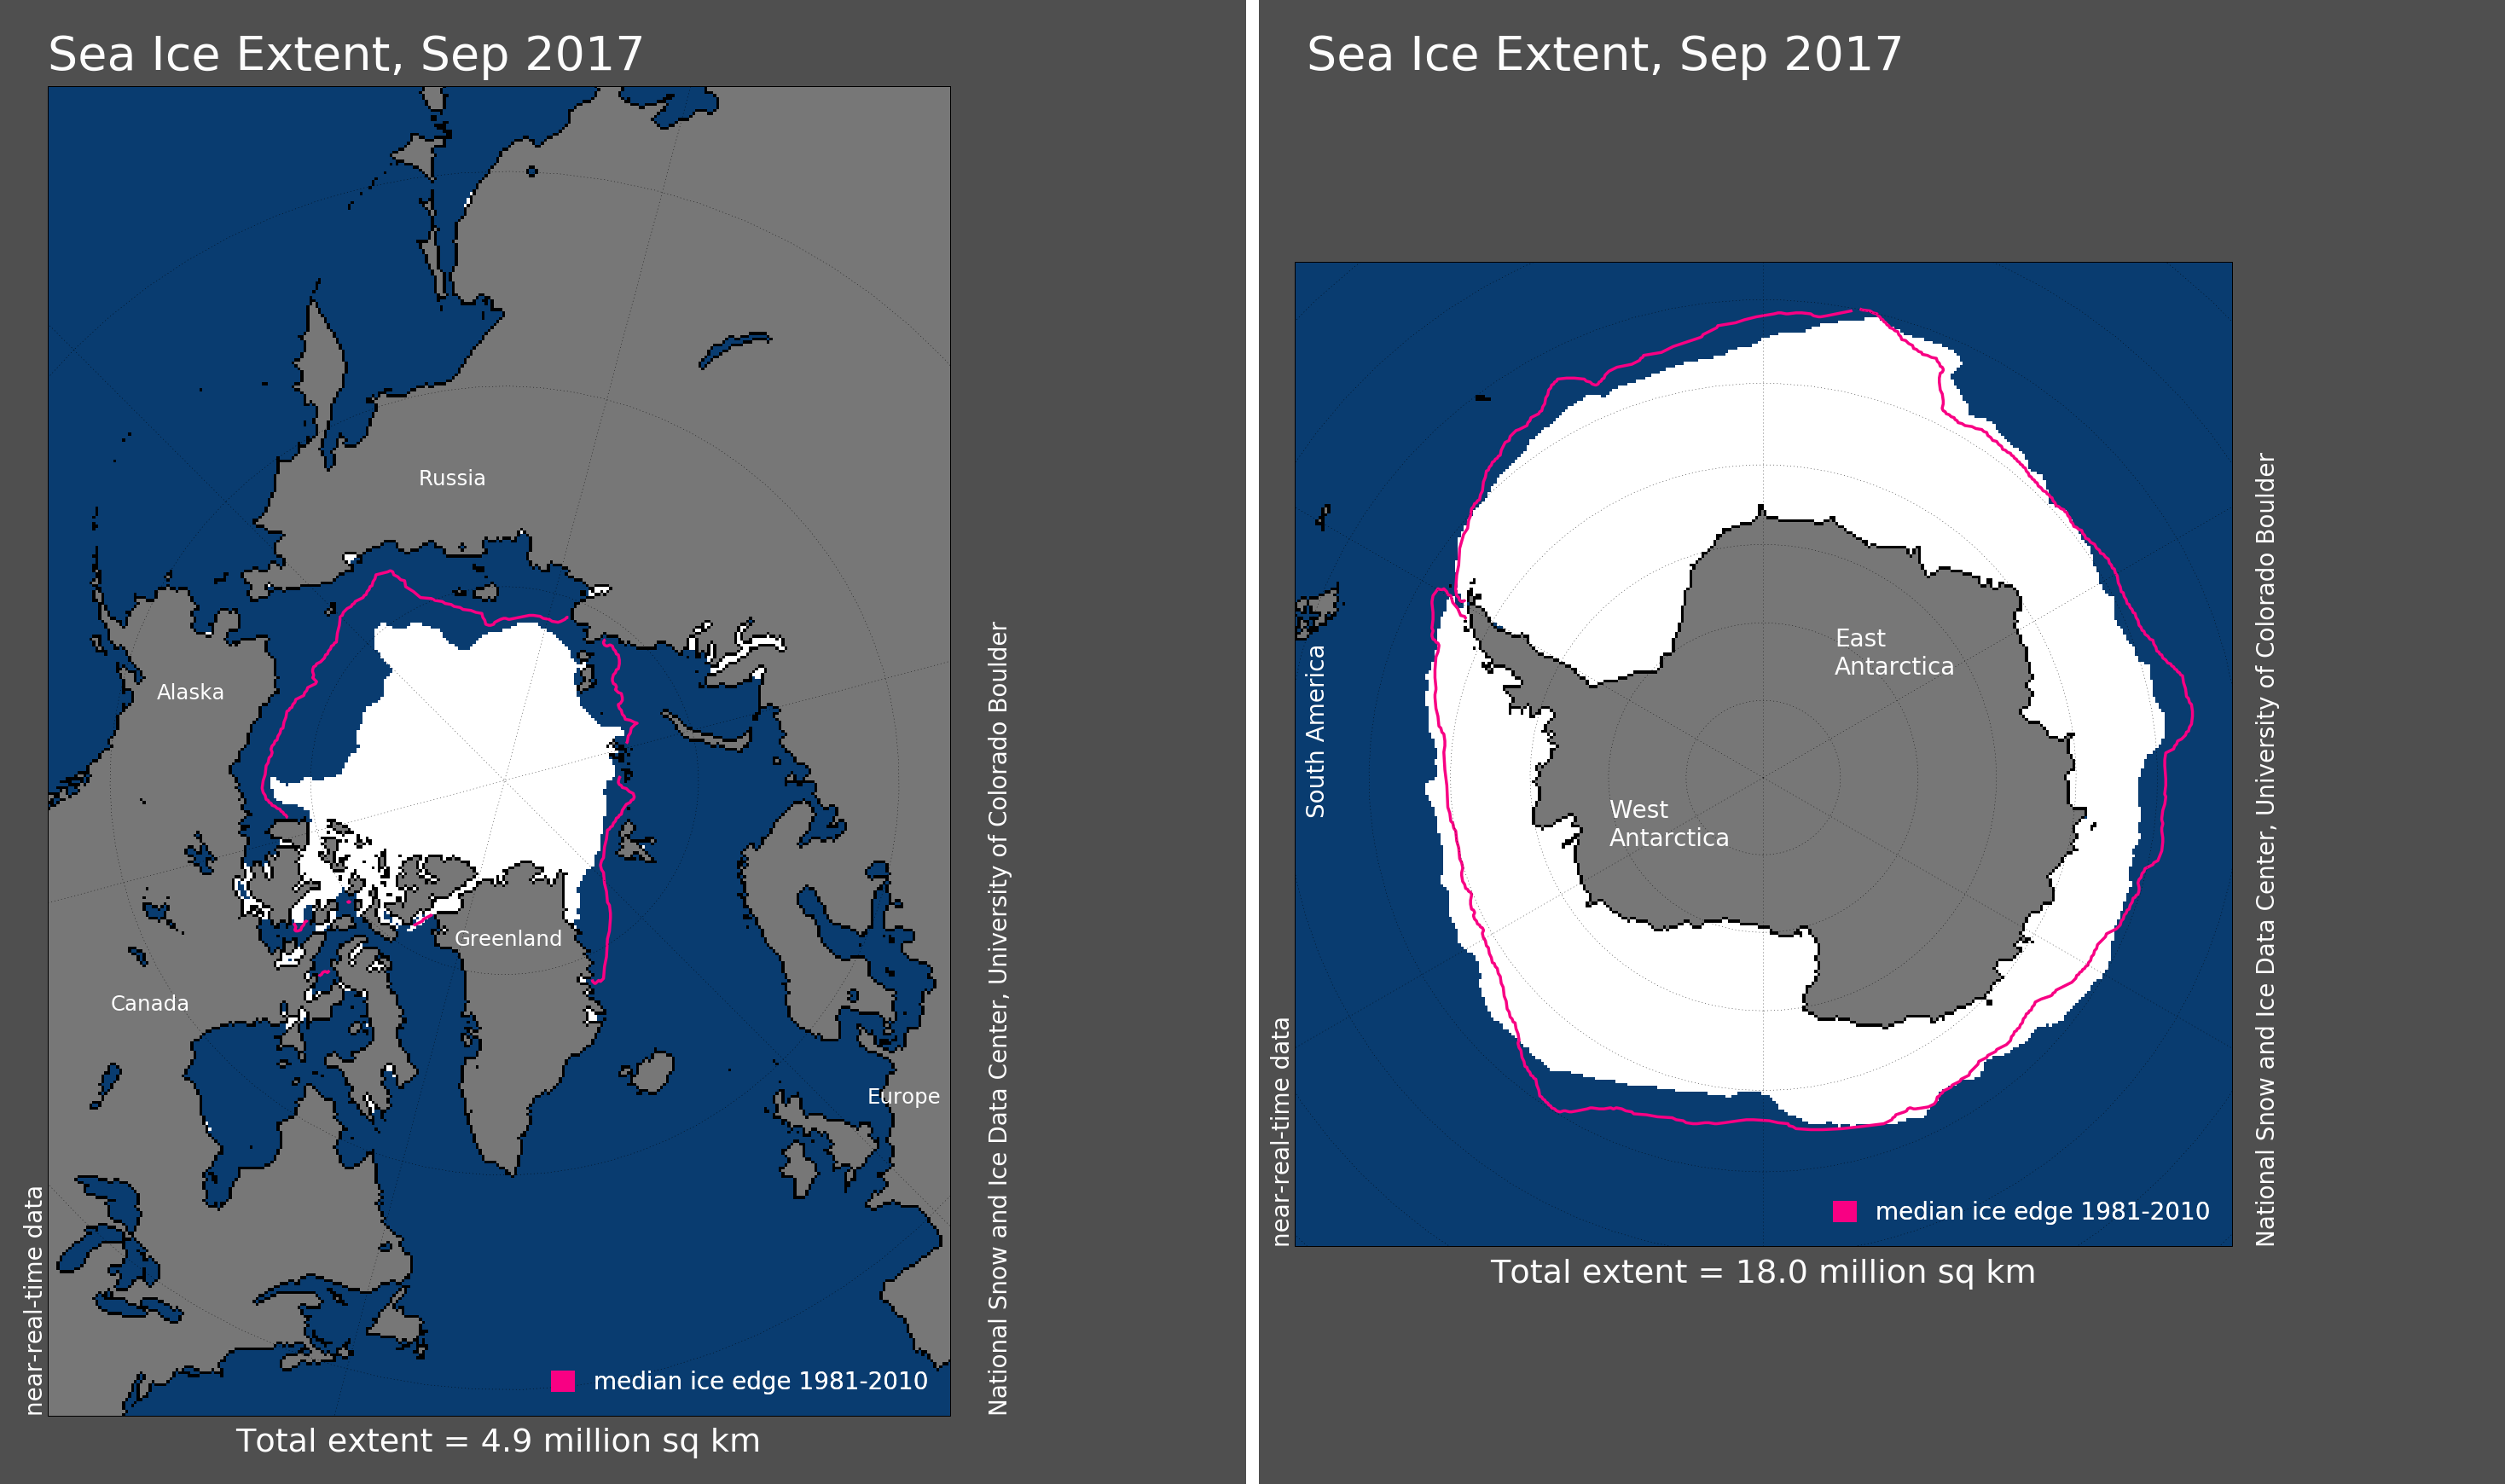 Maps of Arctic and Antarctic sea ice extent in September 2017